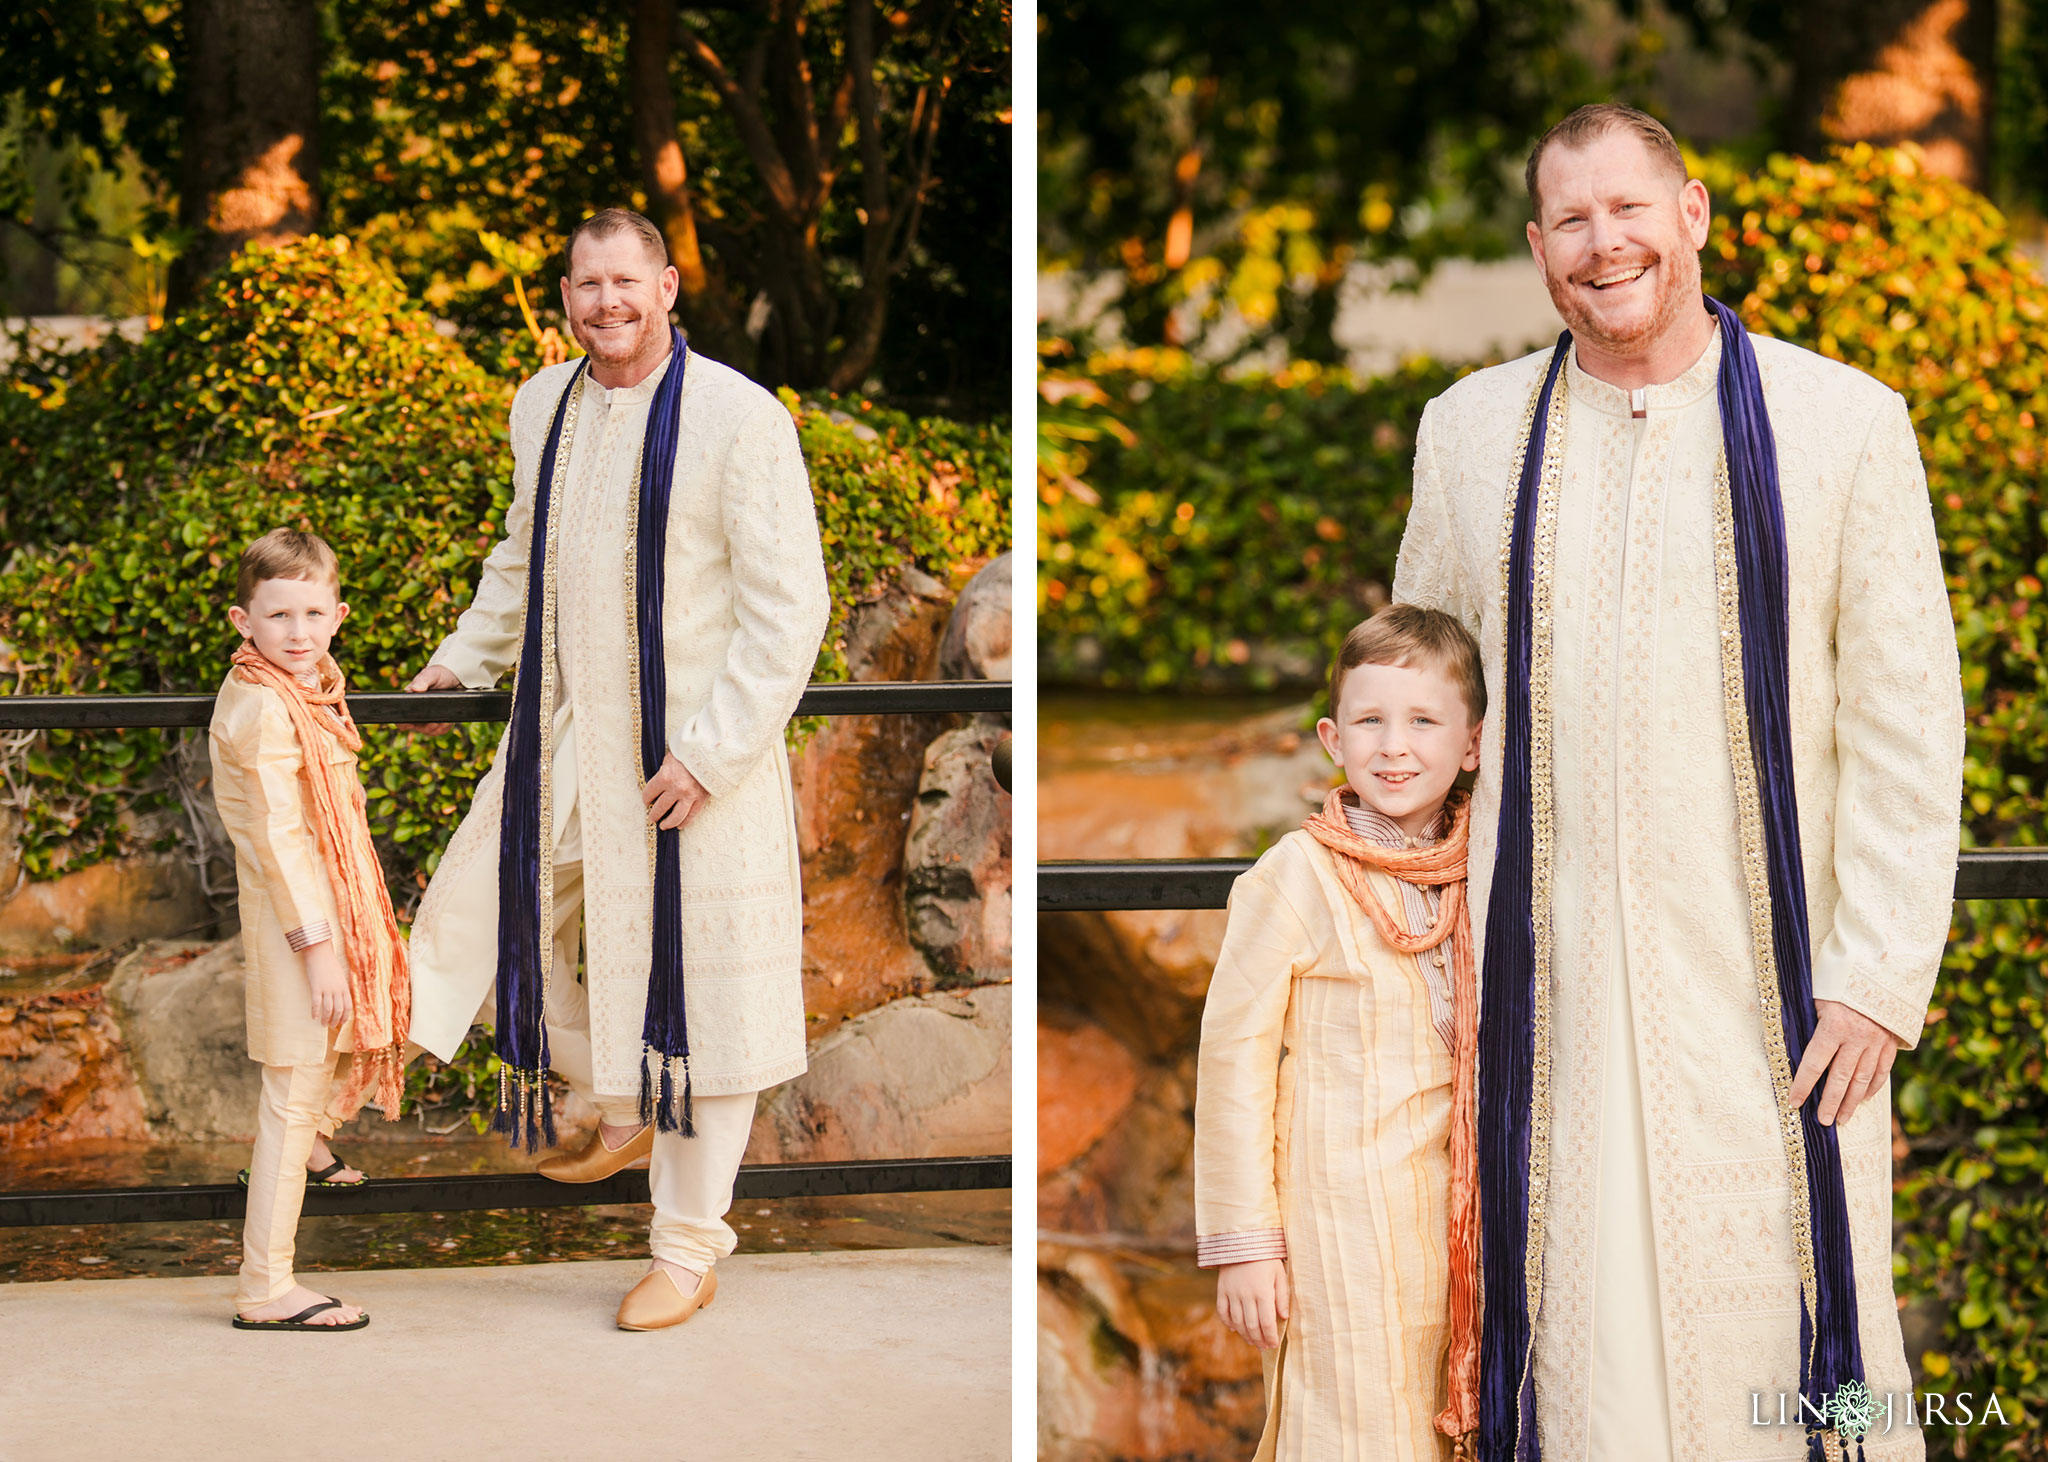 008 sherwood country club indian wedding photography